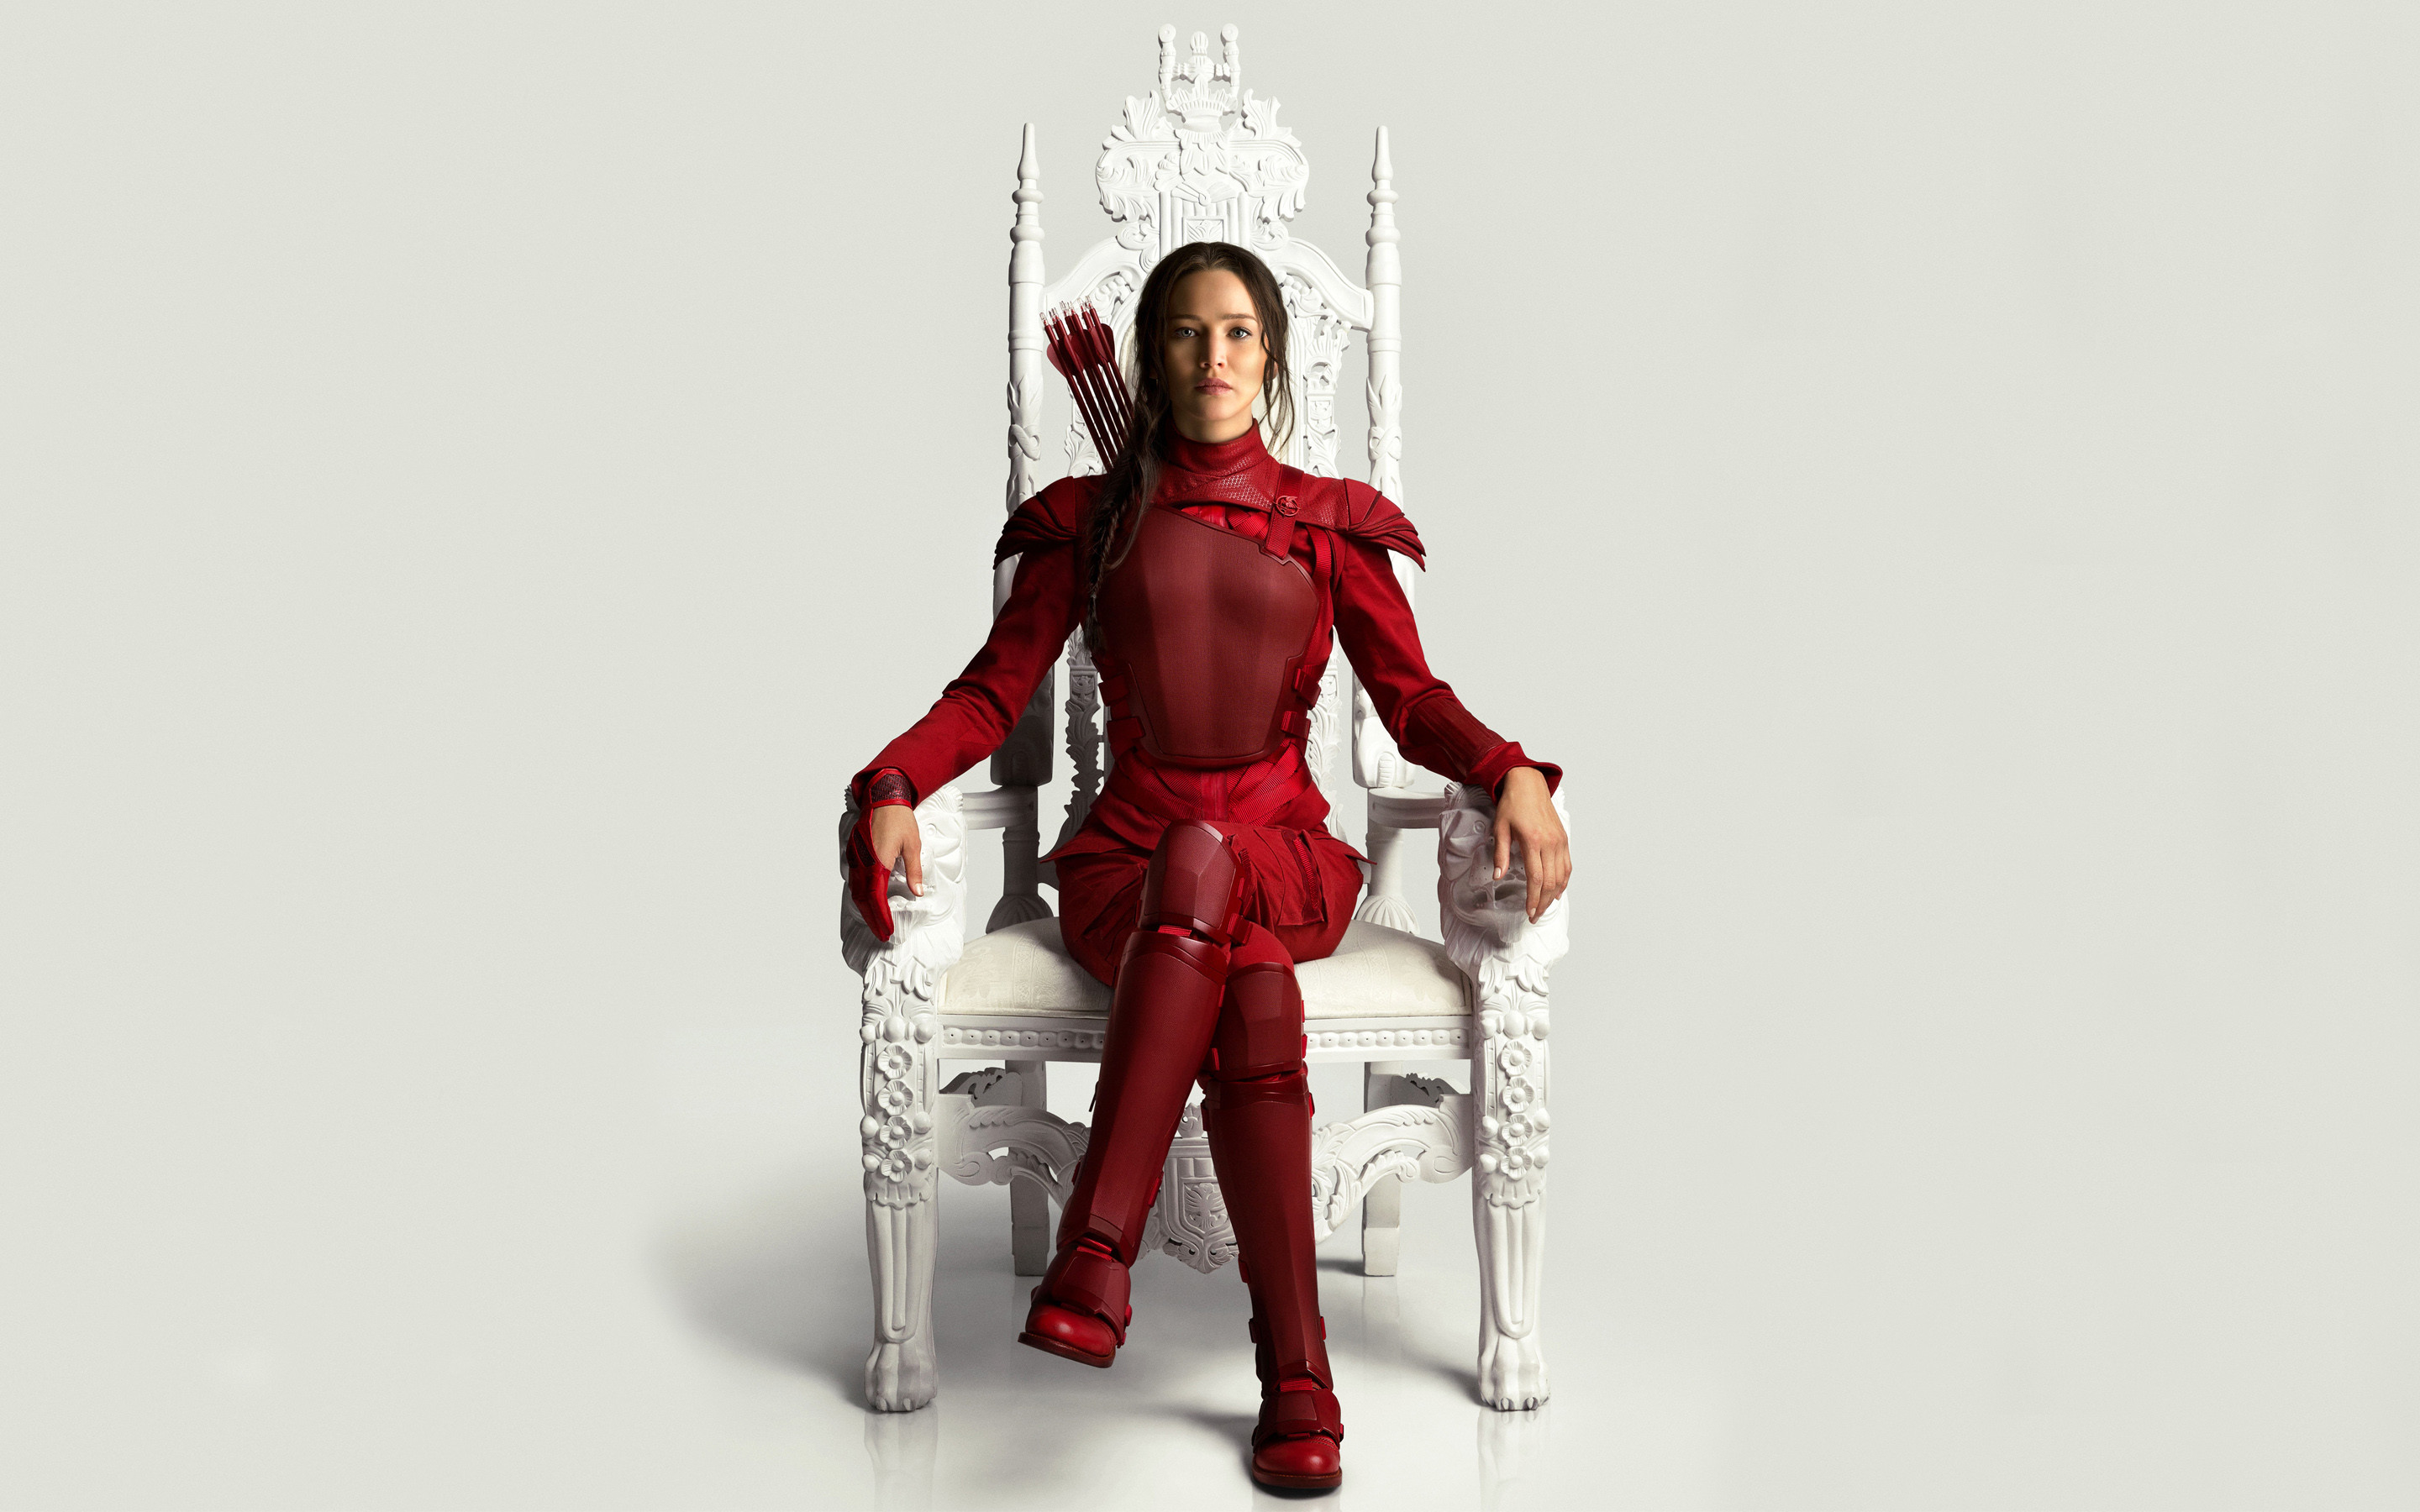 2880x1800 The Hunger Games: Mockingjay - Part 2 HD Wallpaper | Background Image |   | ID:614618 - Wallpaper Abyss